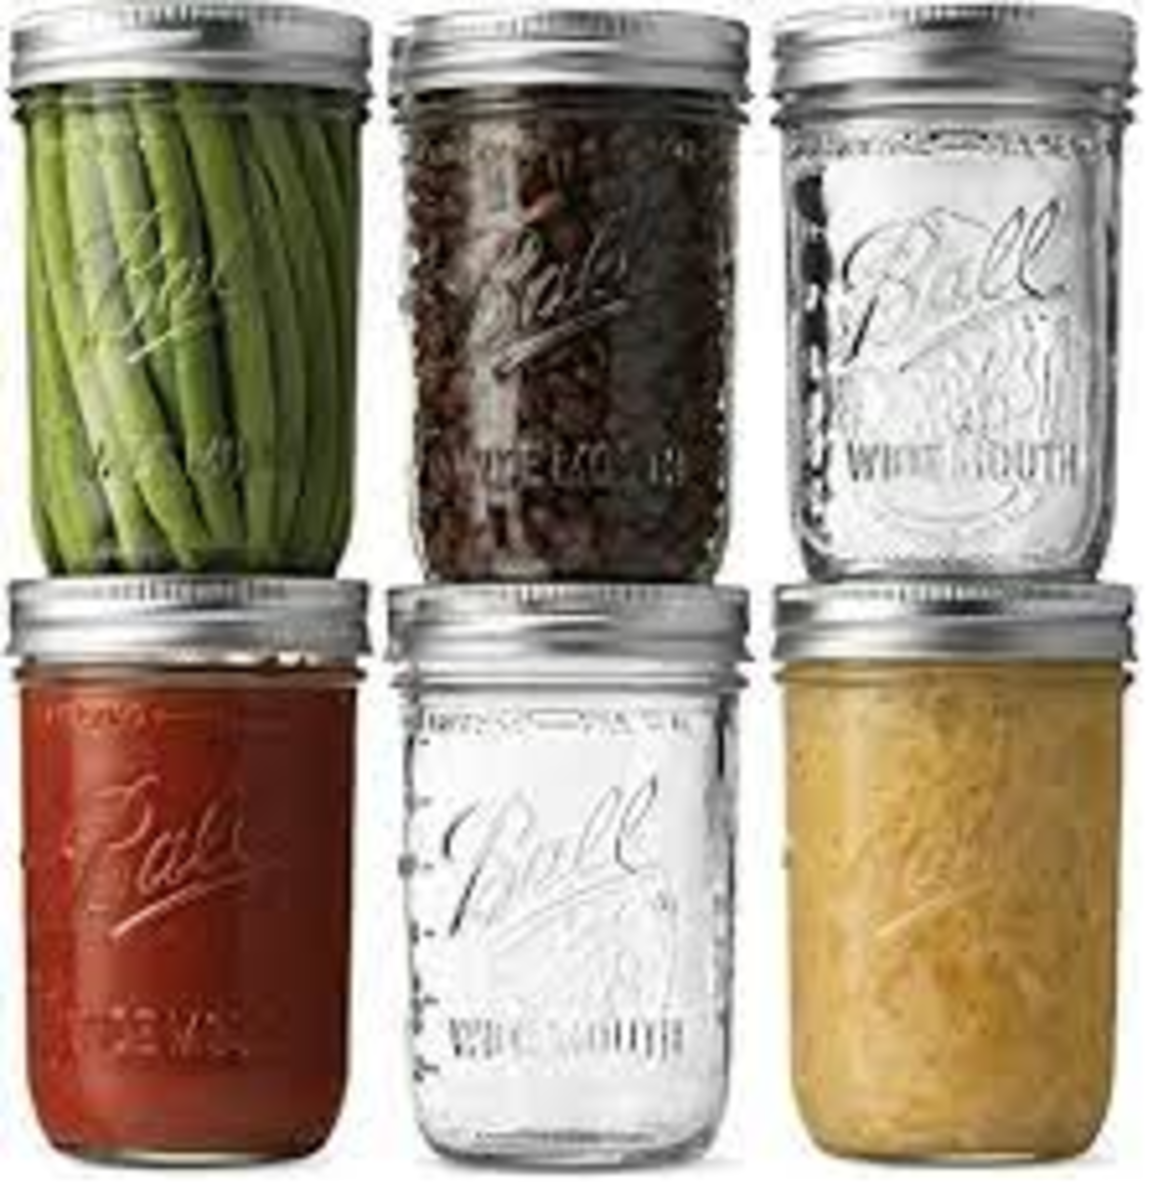 Mason Jars, wide mouth makes everything easier. You will want 16oz jars for infusing, smaller jars may be desired for the finished product.